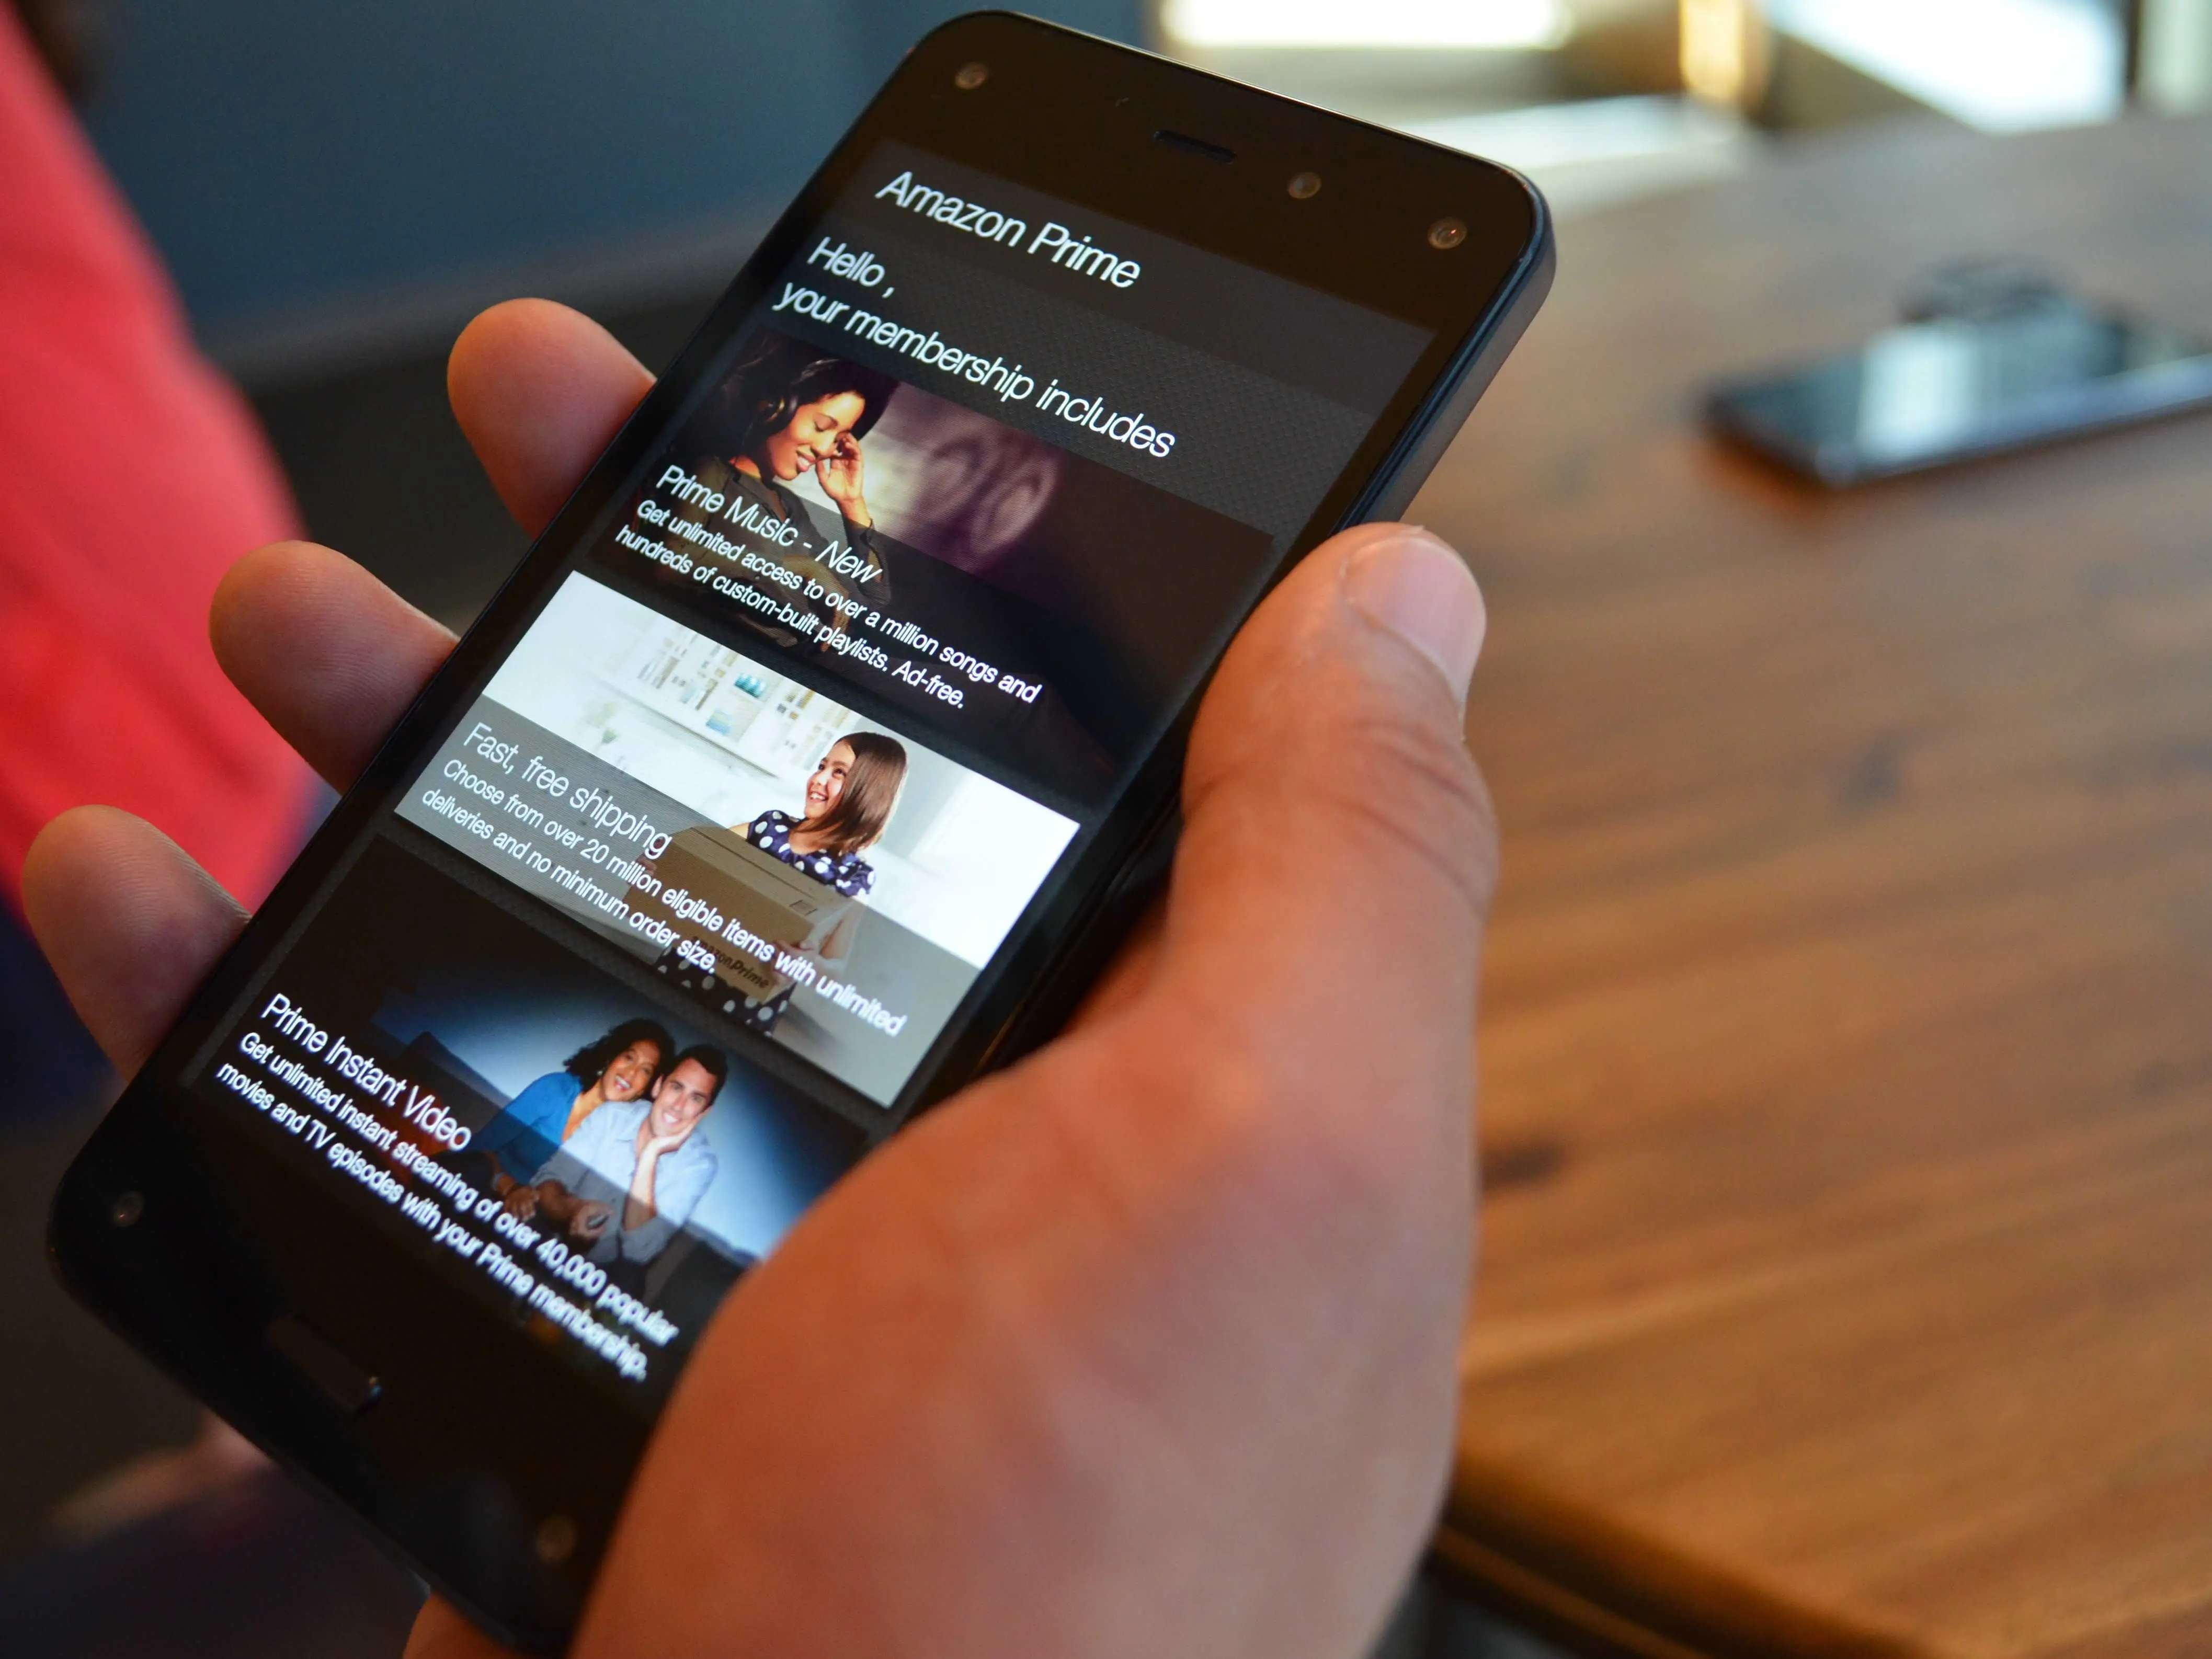 Amazon's Fire Phone launches this summer.